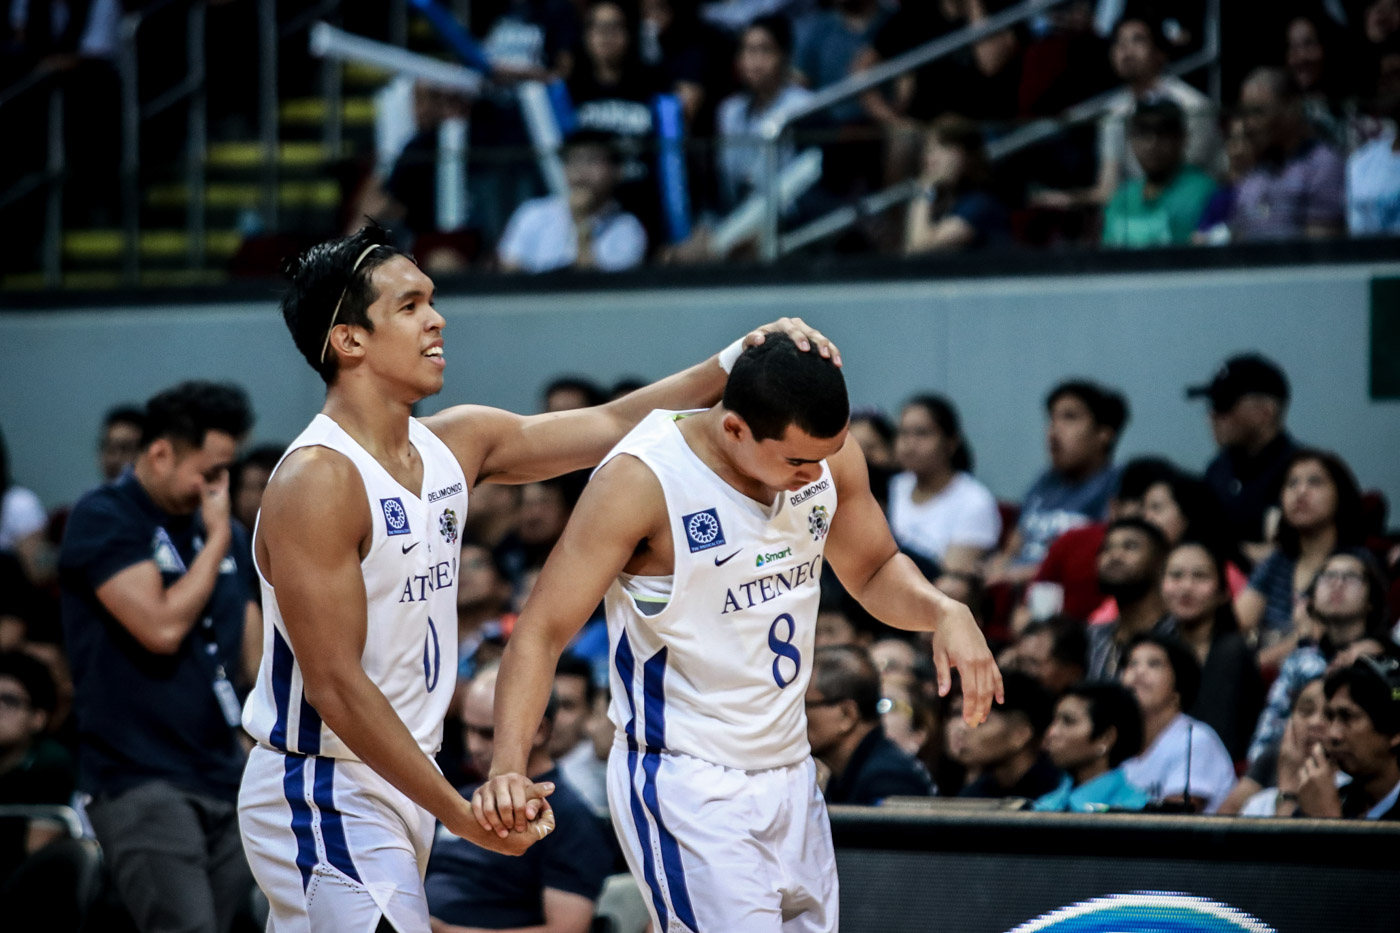 brand new 643e1 6f9e9 Ateneo rips UST by 40 points, sweeps 2nd round